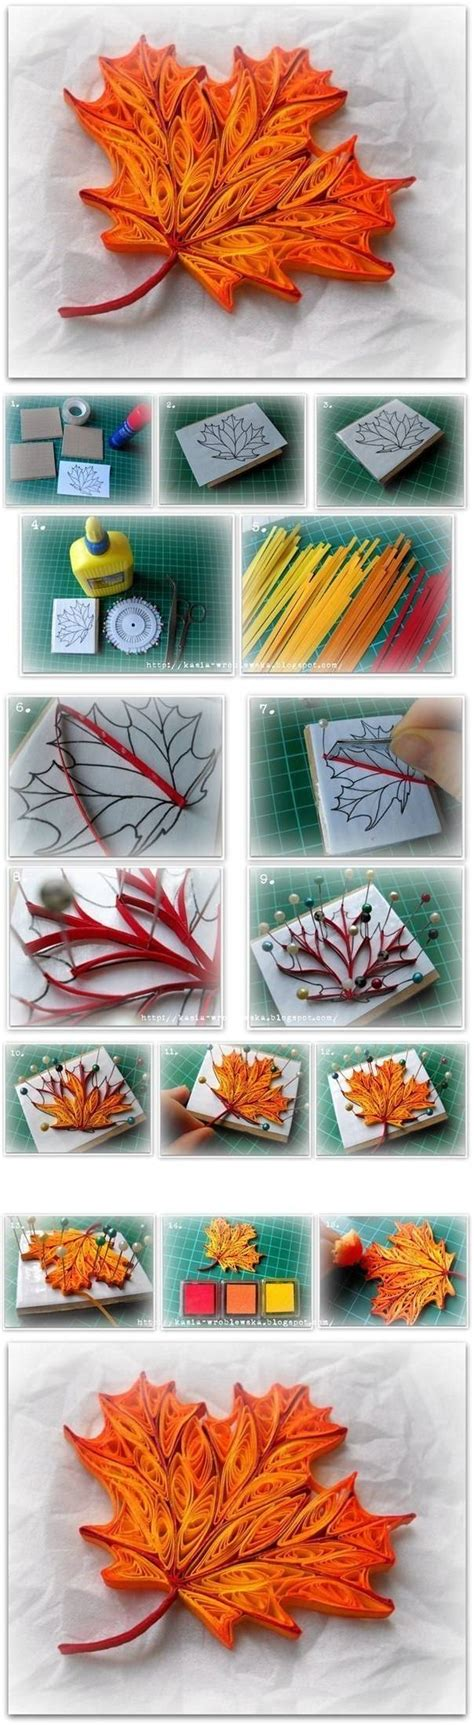 paper quilling tutorial step by step instructions how to make quilled maple leaf step by step diy tutorial